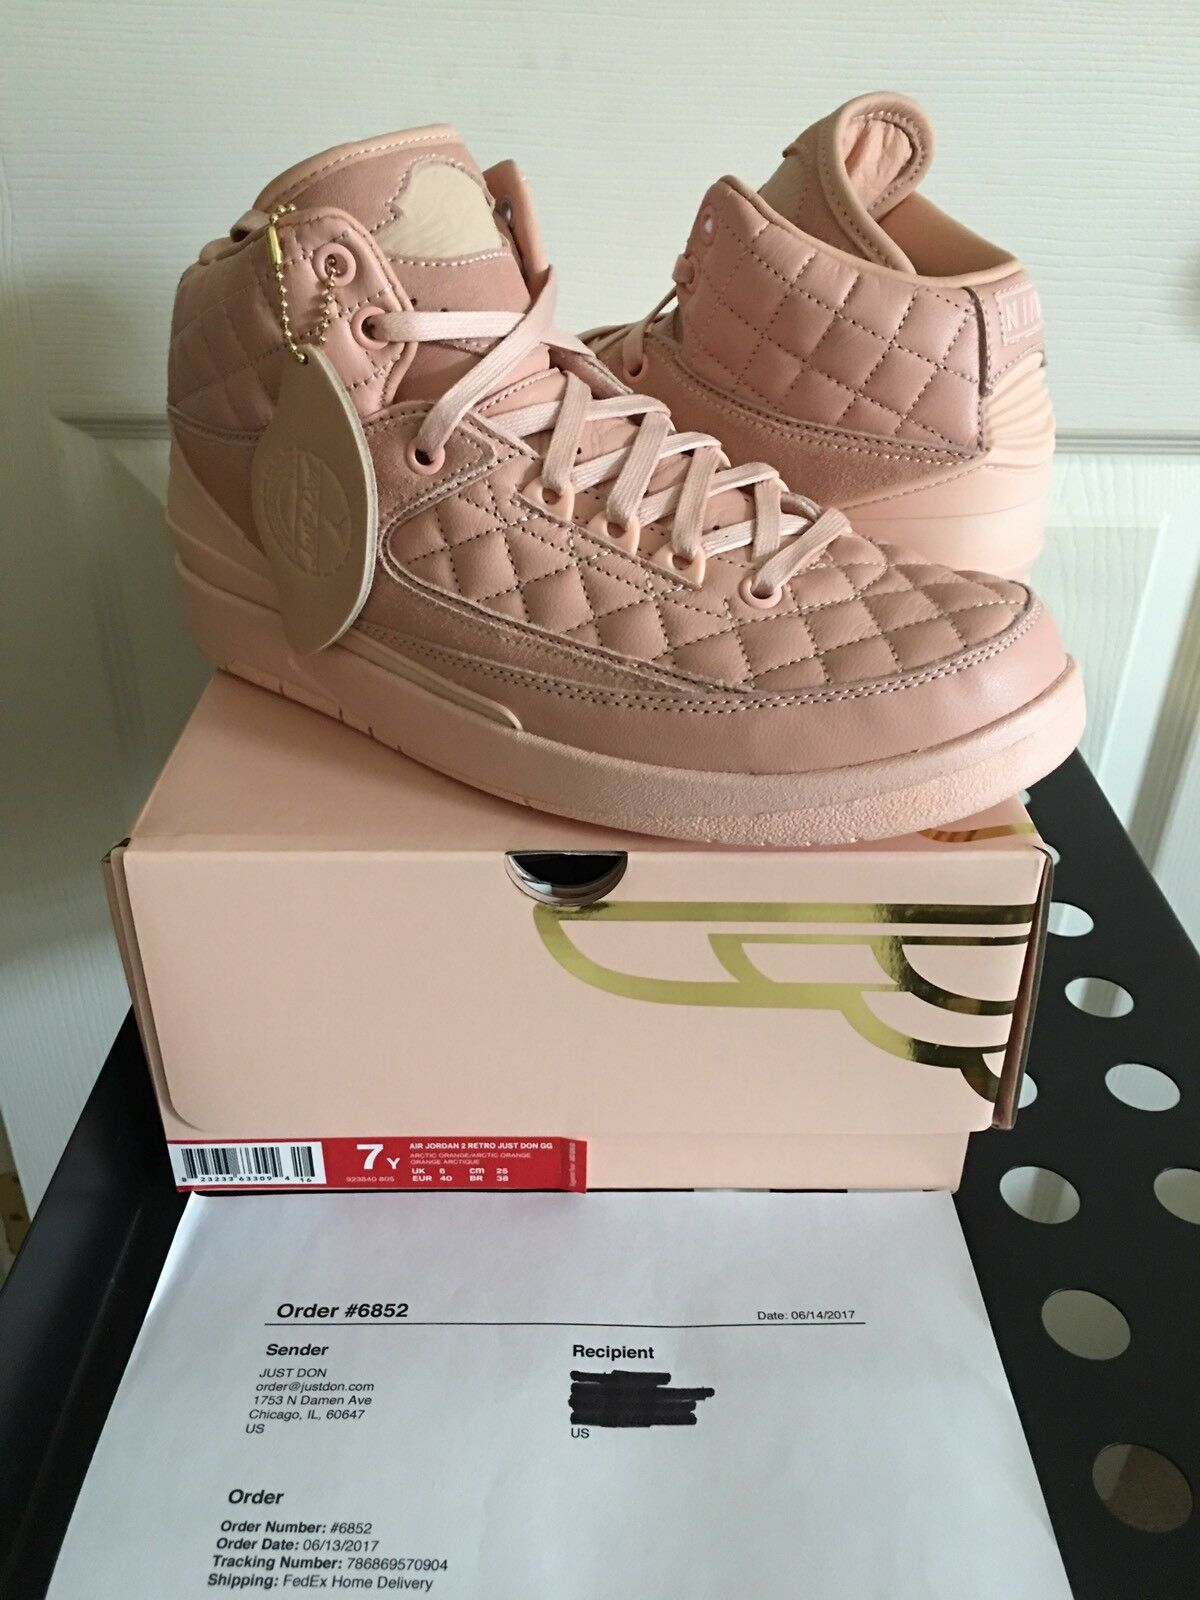 Nike Air Jordan Retro 2 Just Don Pink Arctic orange 100% Authentic W Receipt